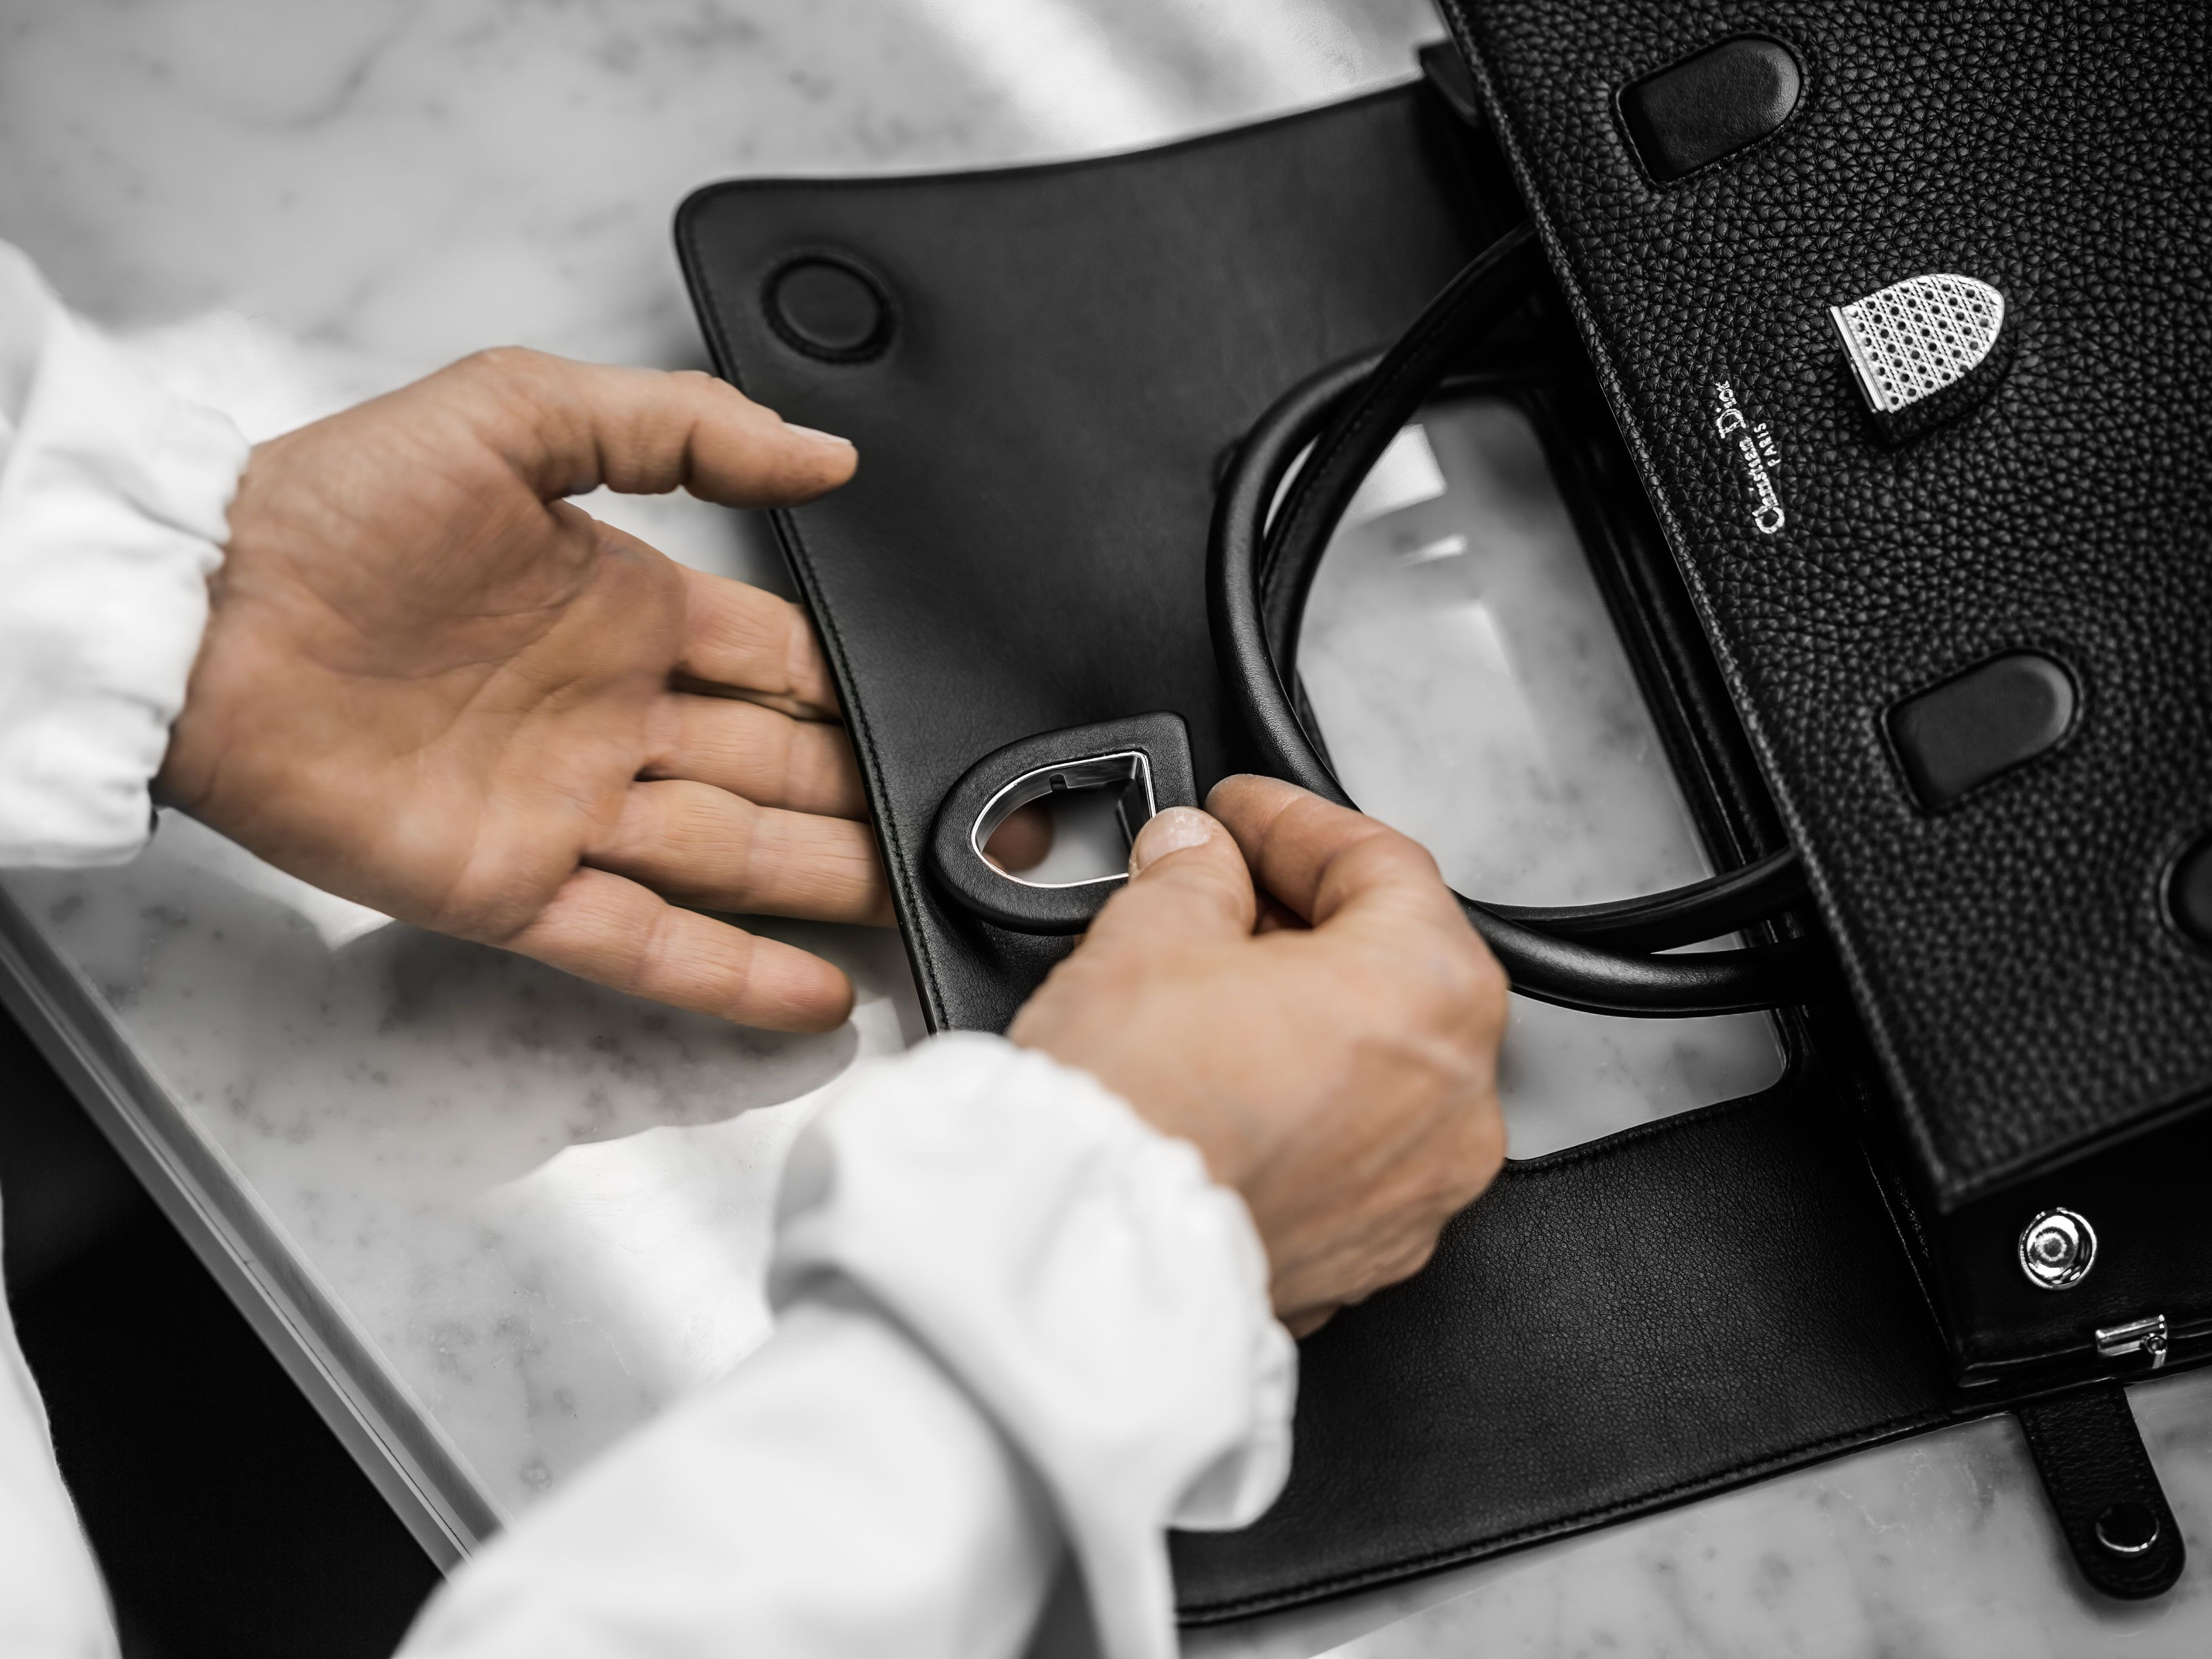 f0c1d46ebf93 Exclusive  watch the making of the new Dior handbag